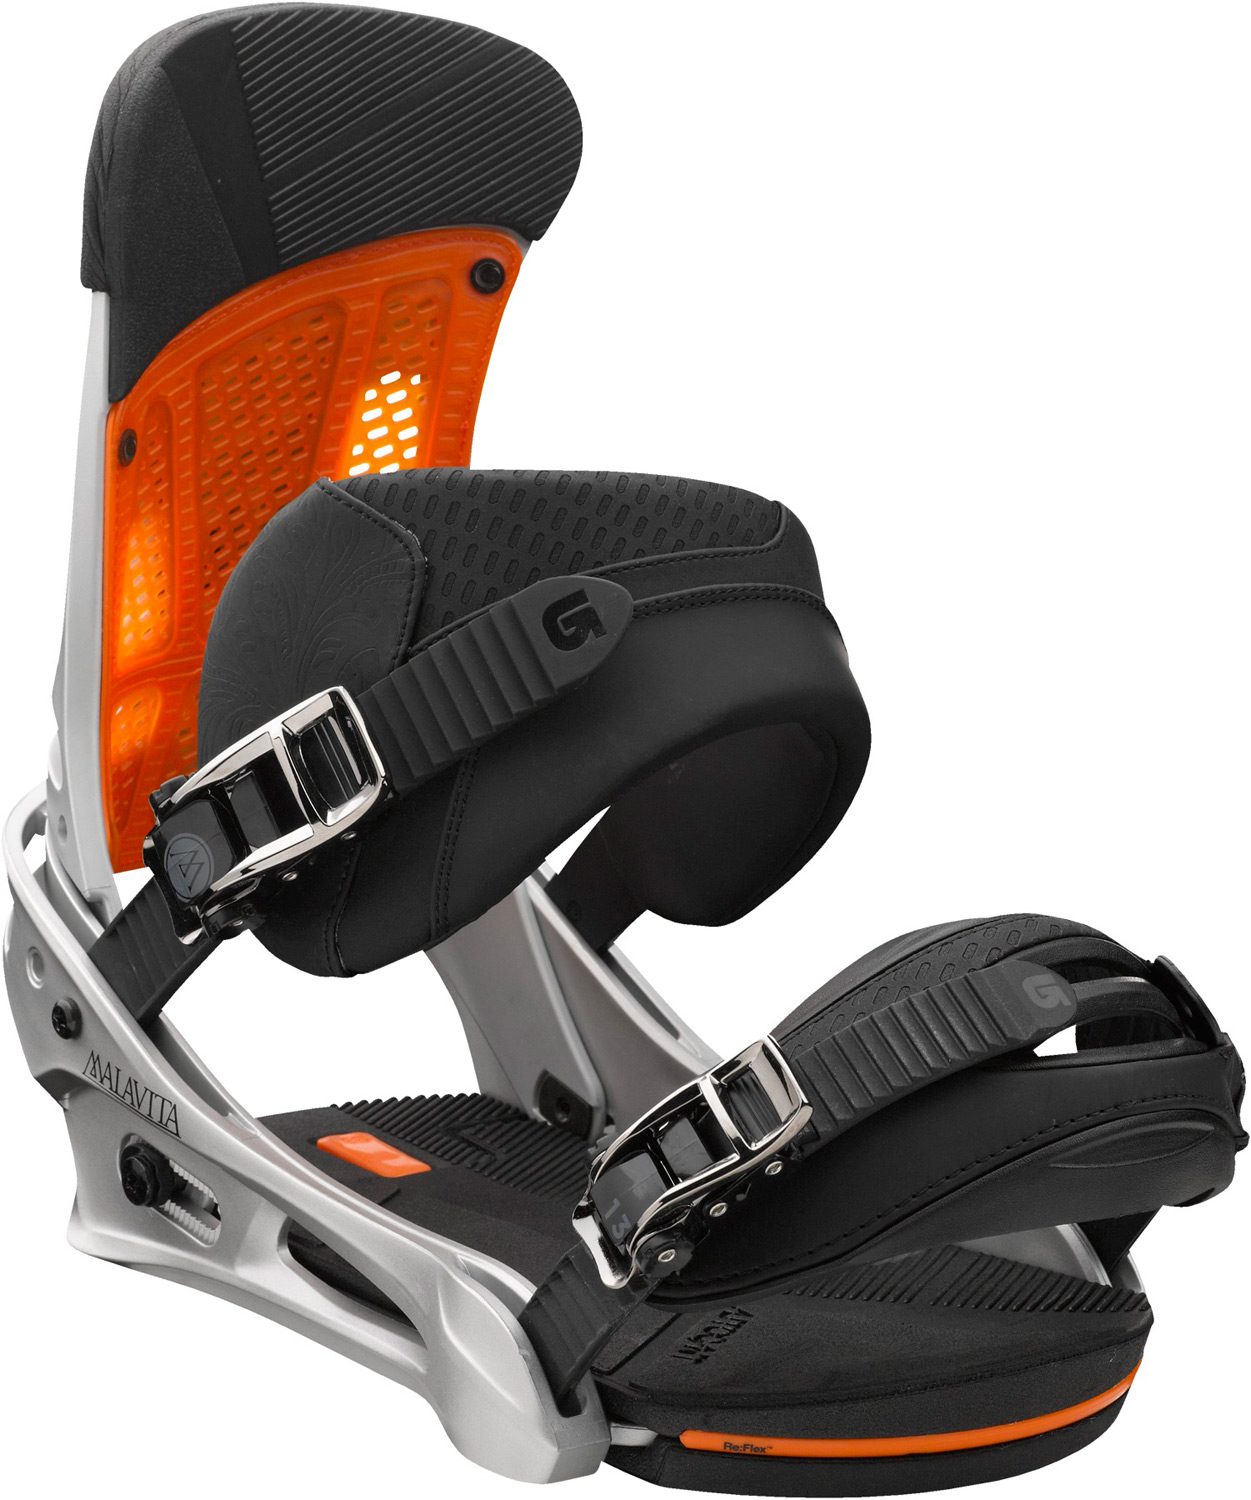 Snowboard Pillage, plunder, punish...you get the drift.Key Features of the Burton Malavita Snowboard Bindings: Response: 6 Baseplate: NEW Single-Component 30% Short-Glass/Nylon Composite Re:Flex™ Hi-Back: Canted living Hinge™ Zero-lean Hi-Back with DialFlAD™ and Heel Hammock Straps: NEW Asym React Strap and Gettagrip Capstrap™ Buckles: Dual-Component Smooth Glide™ Buckles Cushioning: NEW Re:Flex AutoCANT FullBED Cushioning System with B3 Gel Features Re-Ground Materials in Baseplate and Hi-Back to Reduce Waste - $194.95